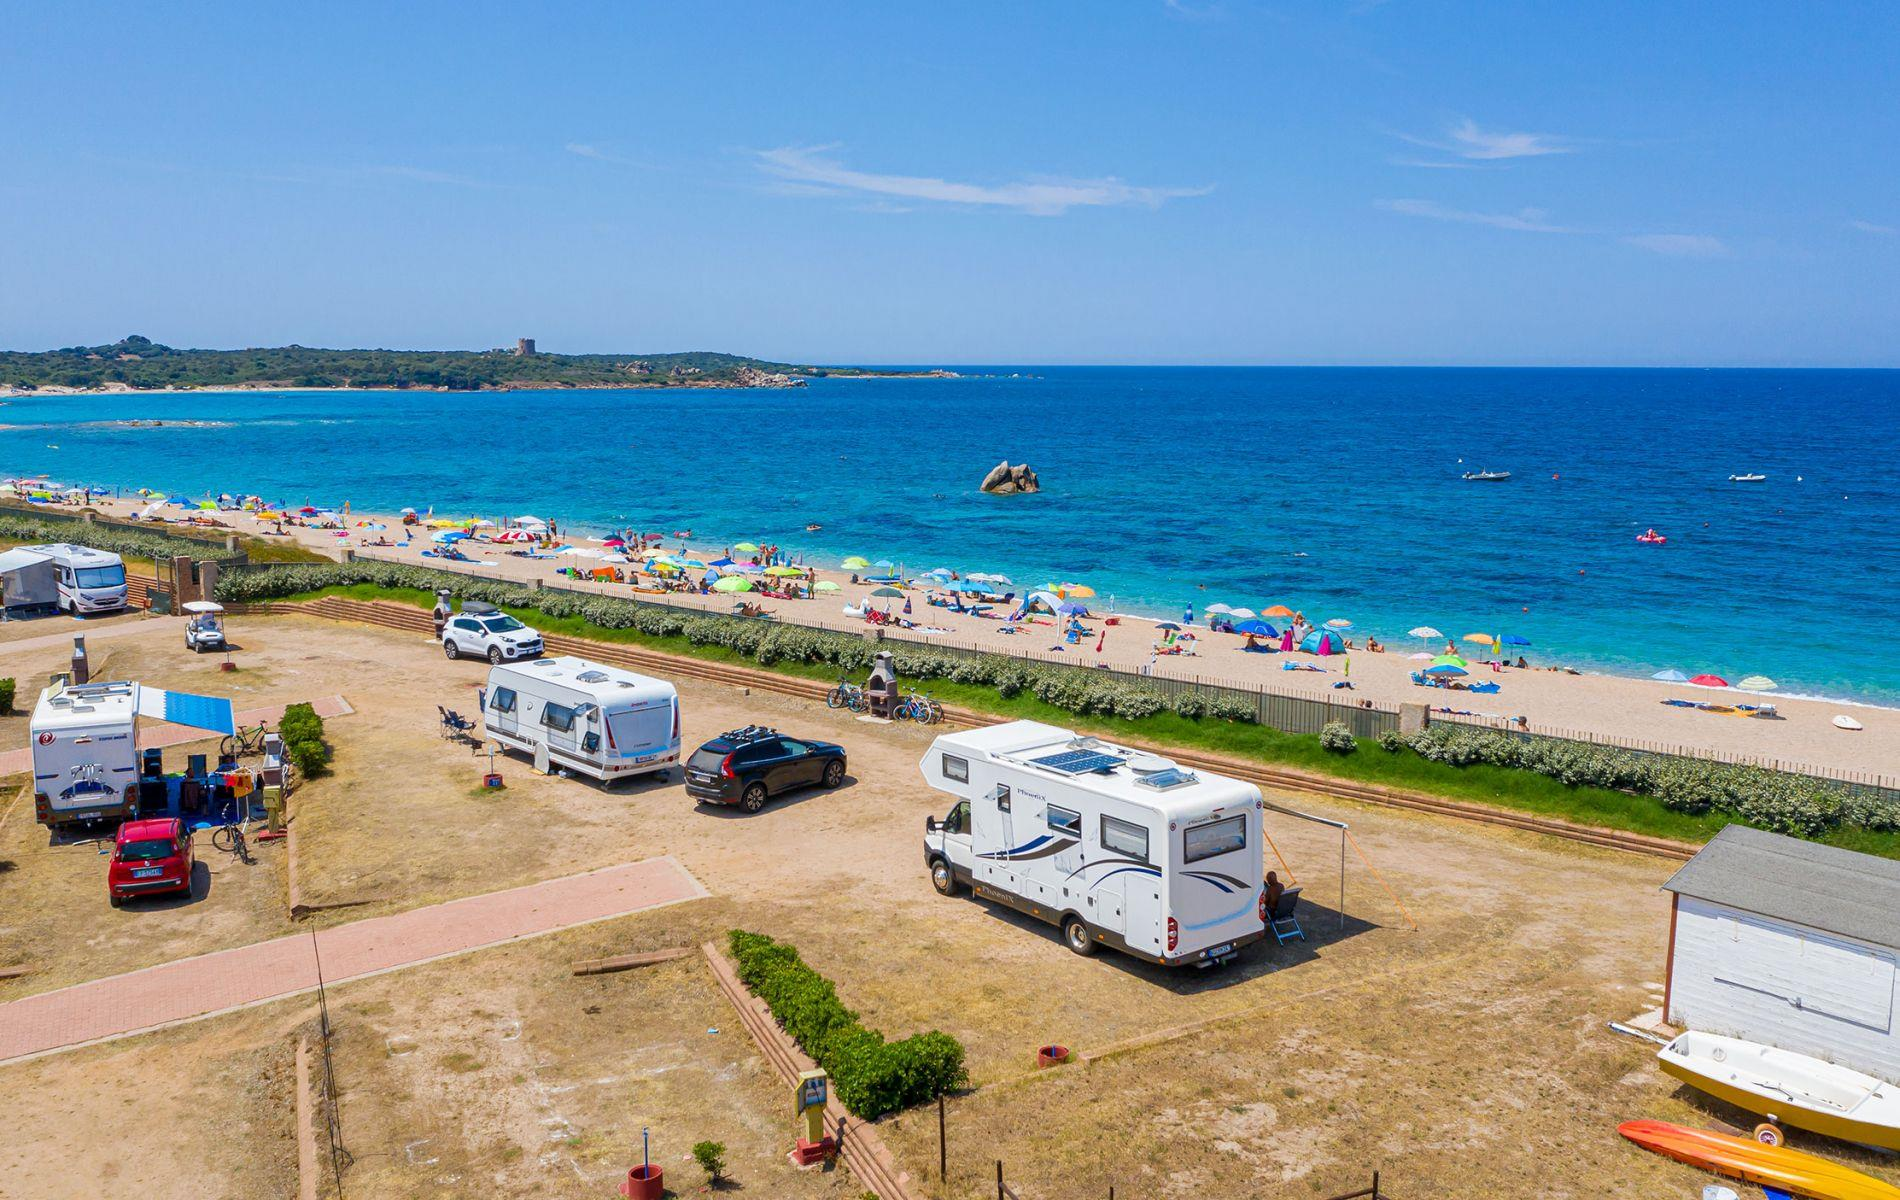 Emplacement - Emplacement Paradise - Camping Baia Blu la Tortuga